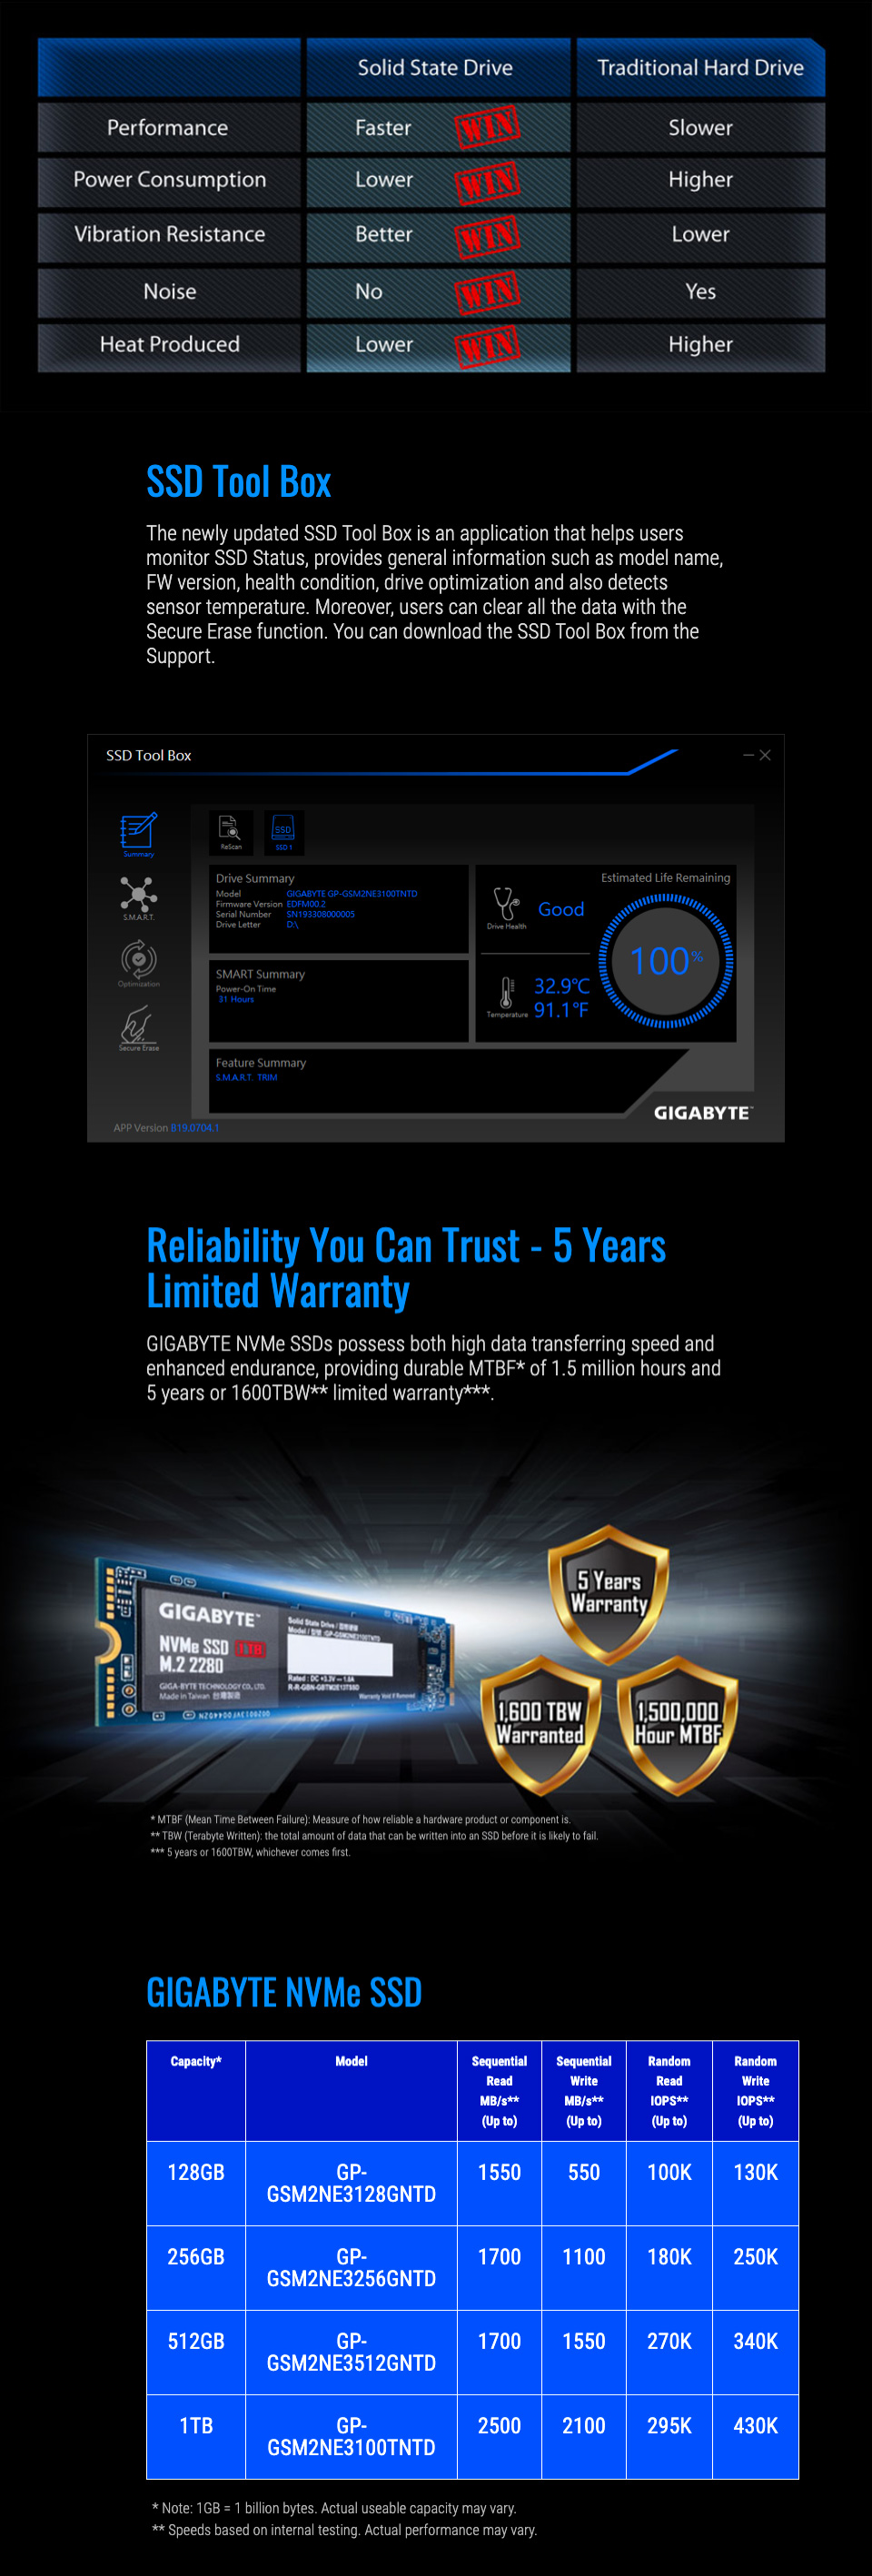 Gigabyte GSM2NE3 M.2 NVMe Solid State Drive 1TB features